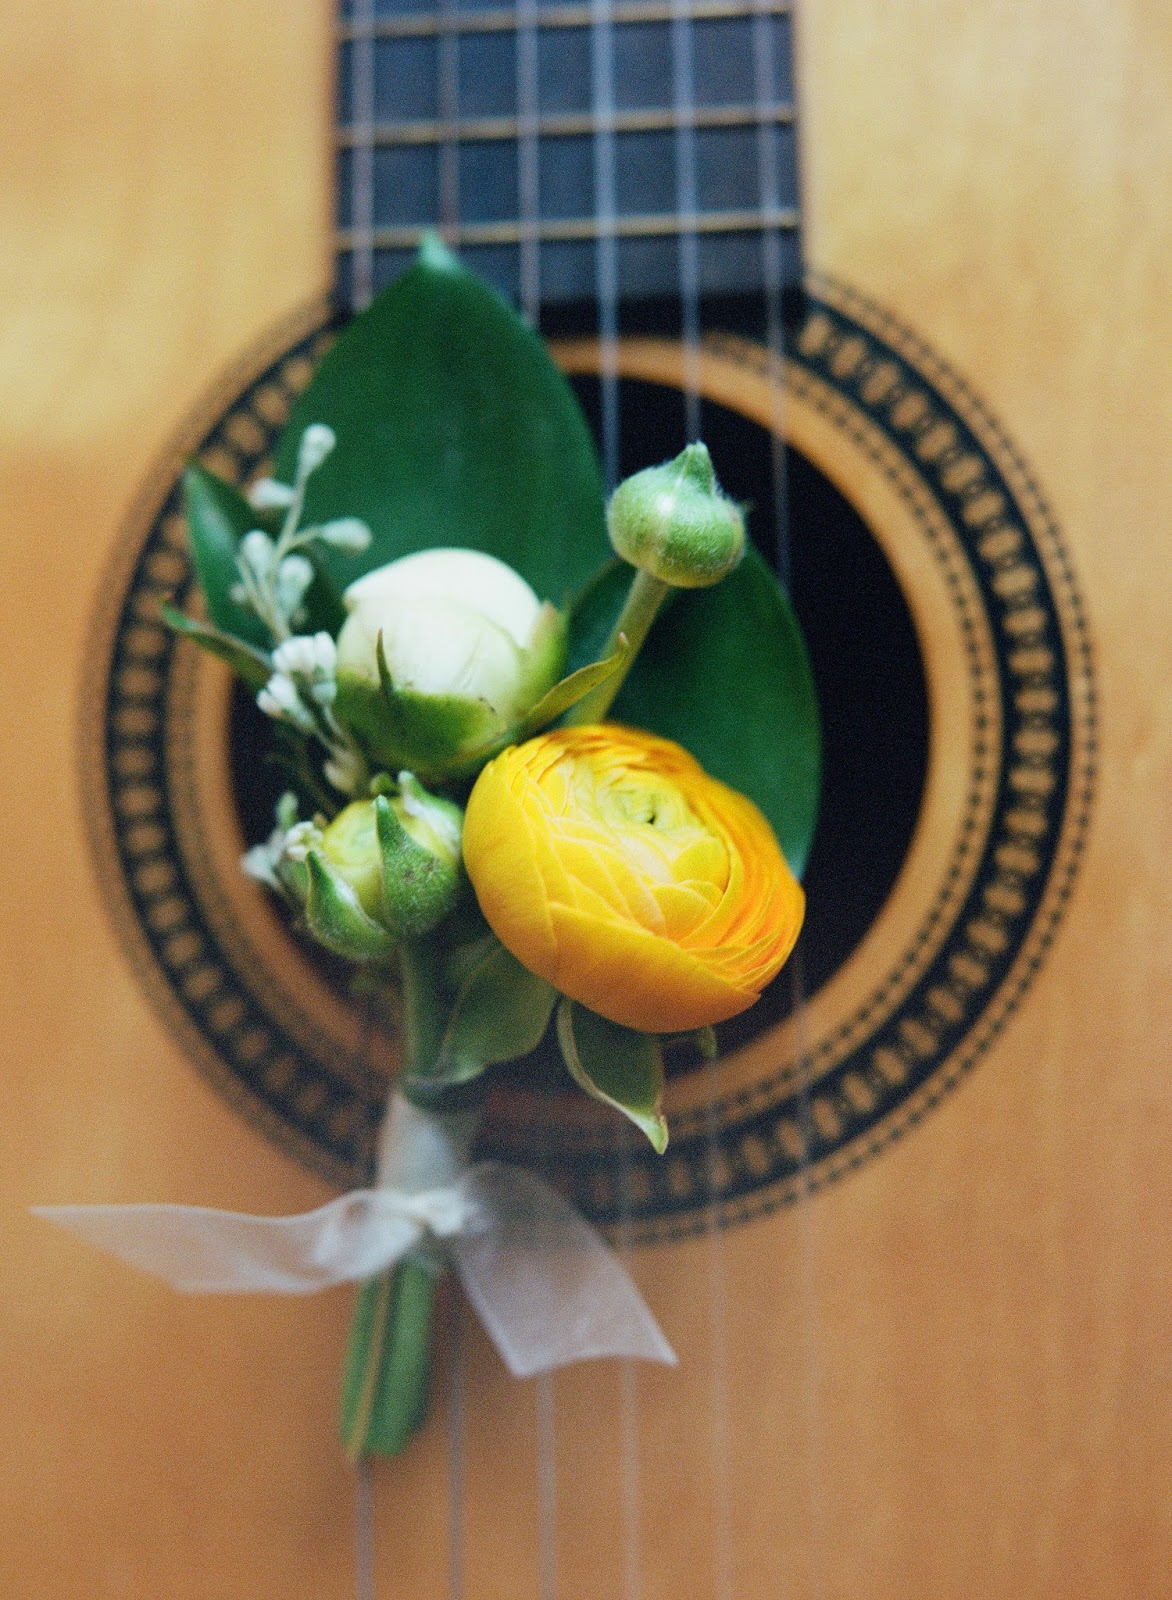 yellow ranunculus and peony spring boutonniere resting on an acoustic guitar